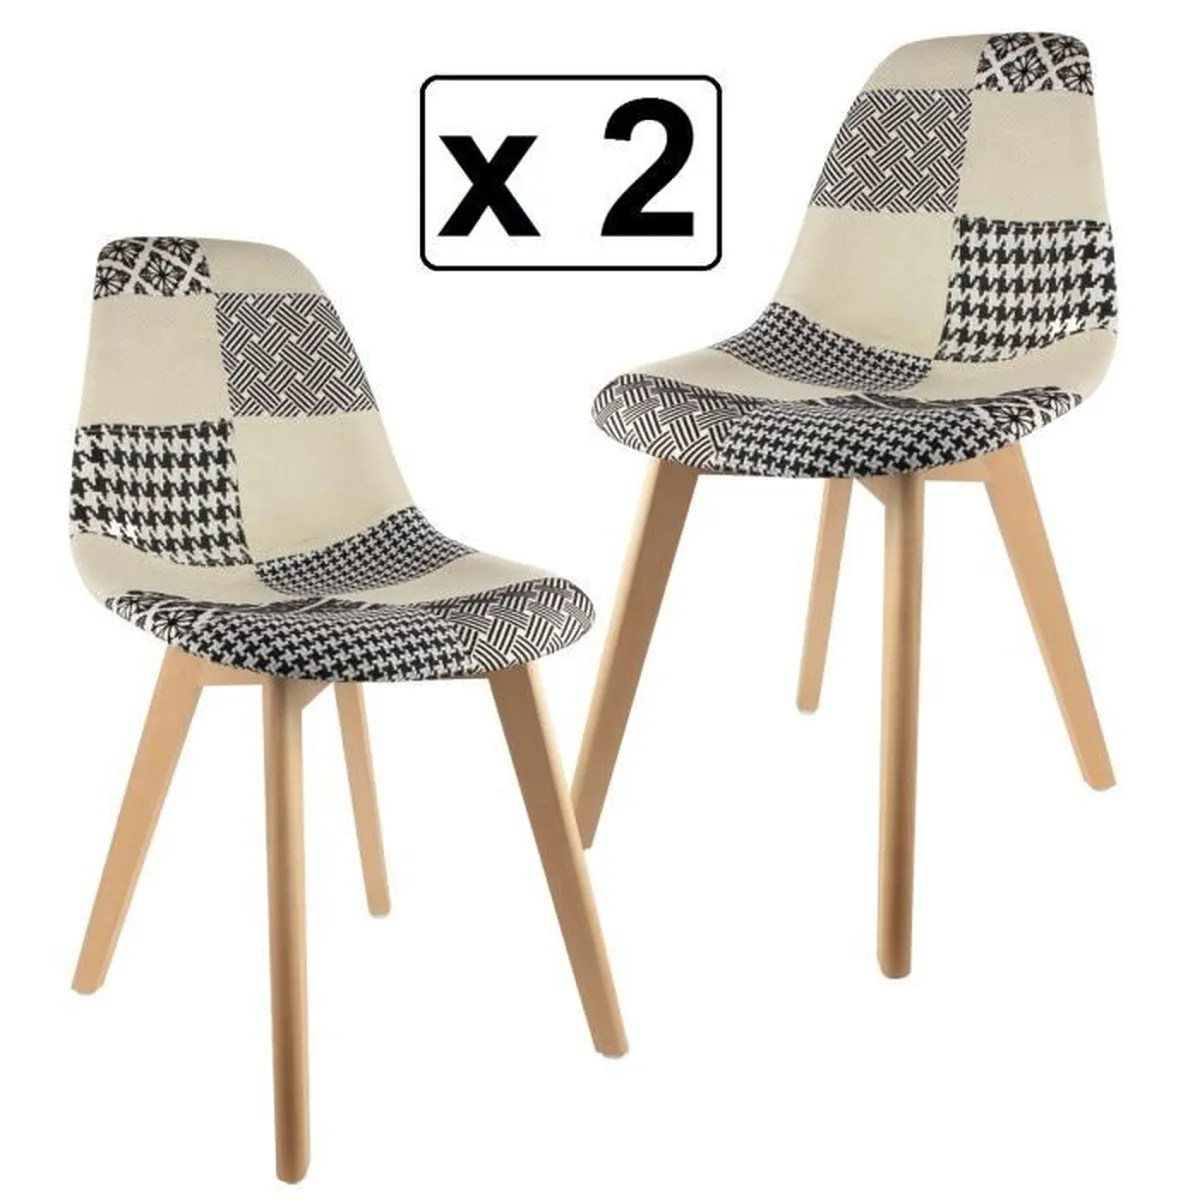 Chaise Design Patchwork Lot De 2 Chaises Design Patchwork Style Contemporain Noir Et